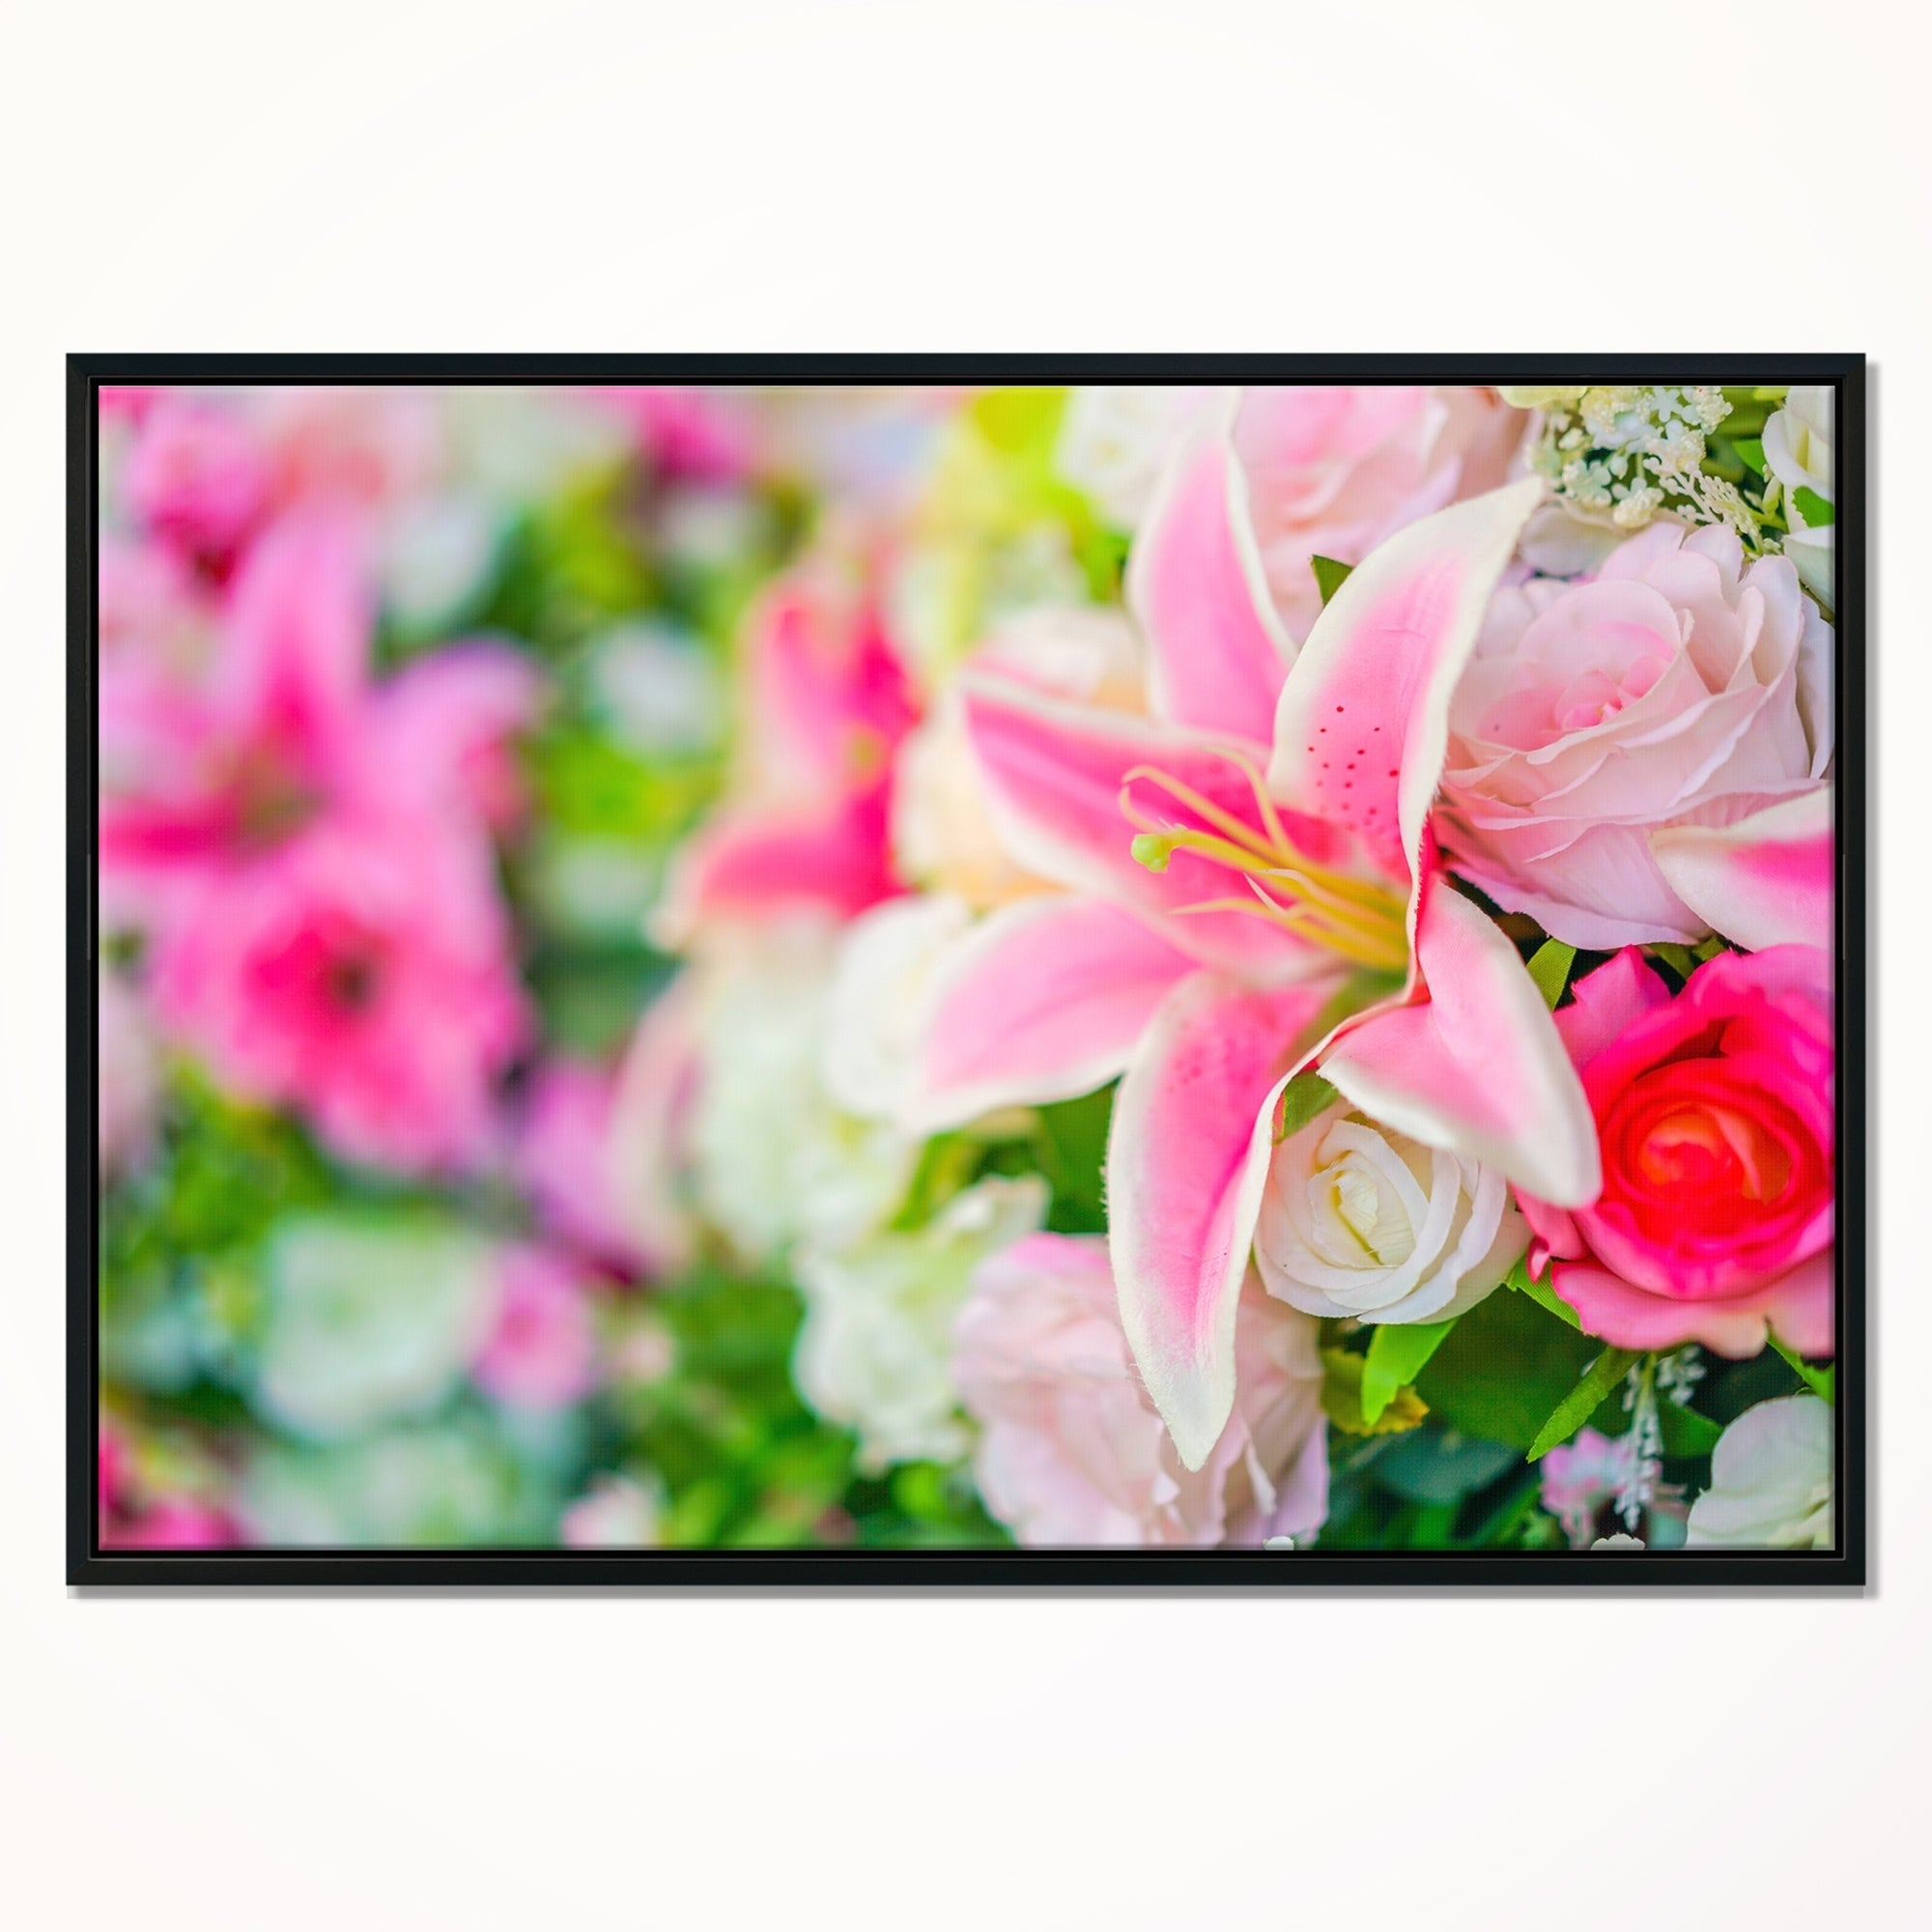 Shop designart beautiful lily flowers in bouquet floral art framed shop designart beautiful lily flowers in bouquet floral art framed canvas print on sale free shipping today overstock 18956572 izmirmasajfo